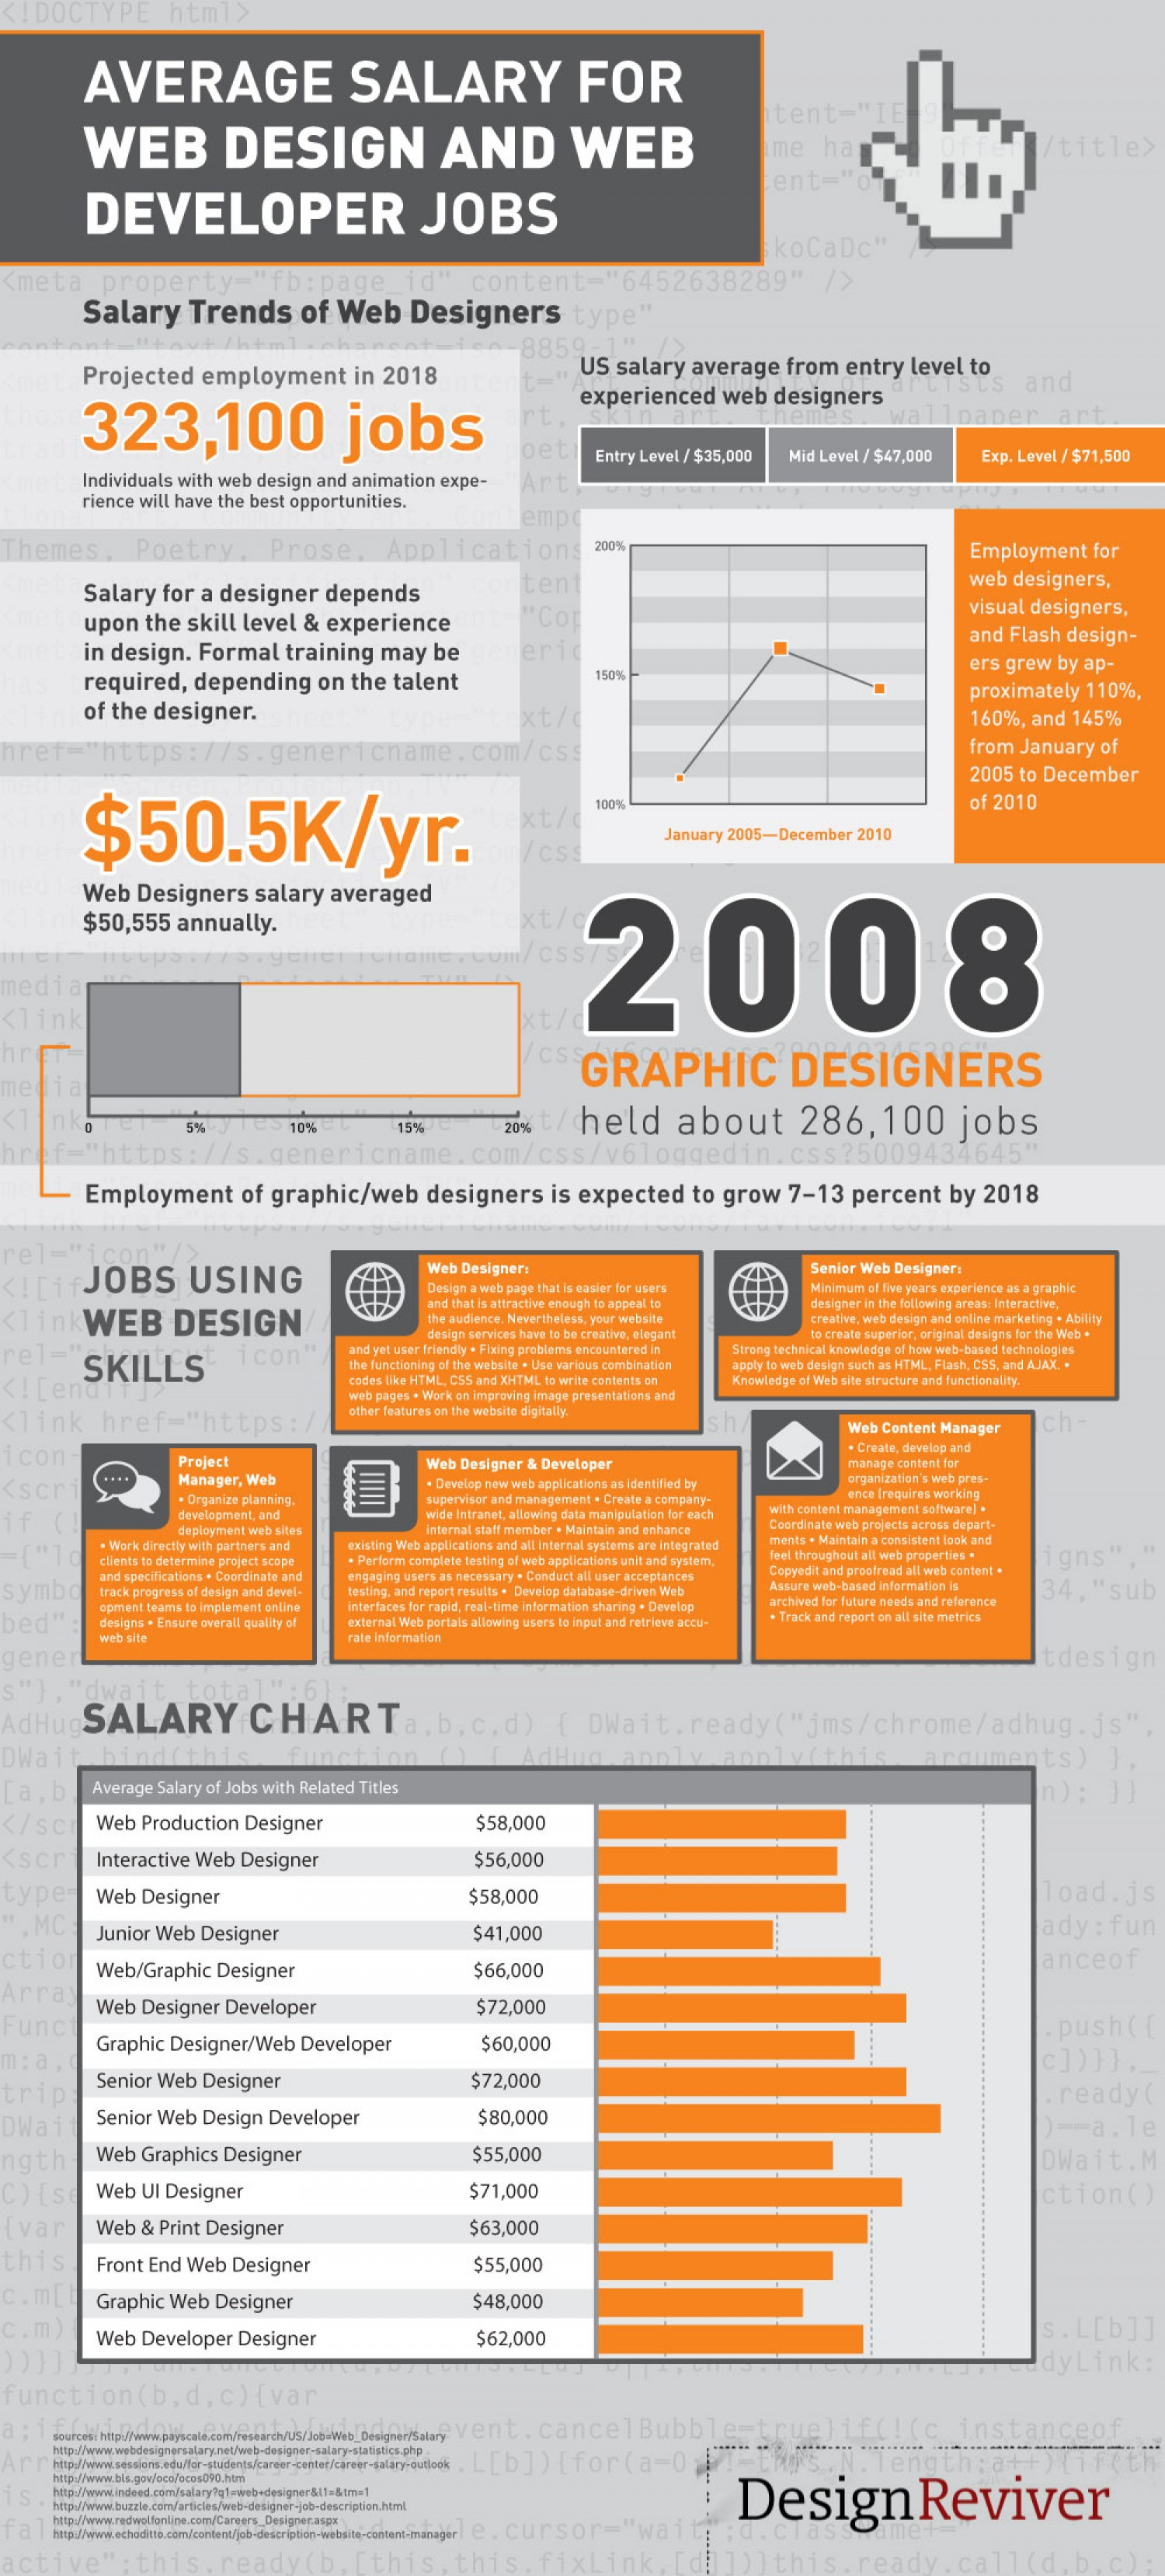 Average Salary For Web Designers And Web Developers